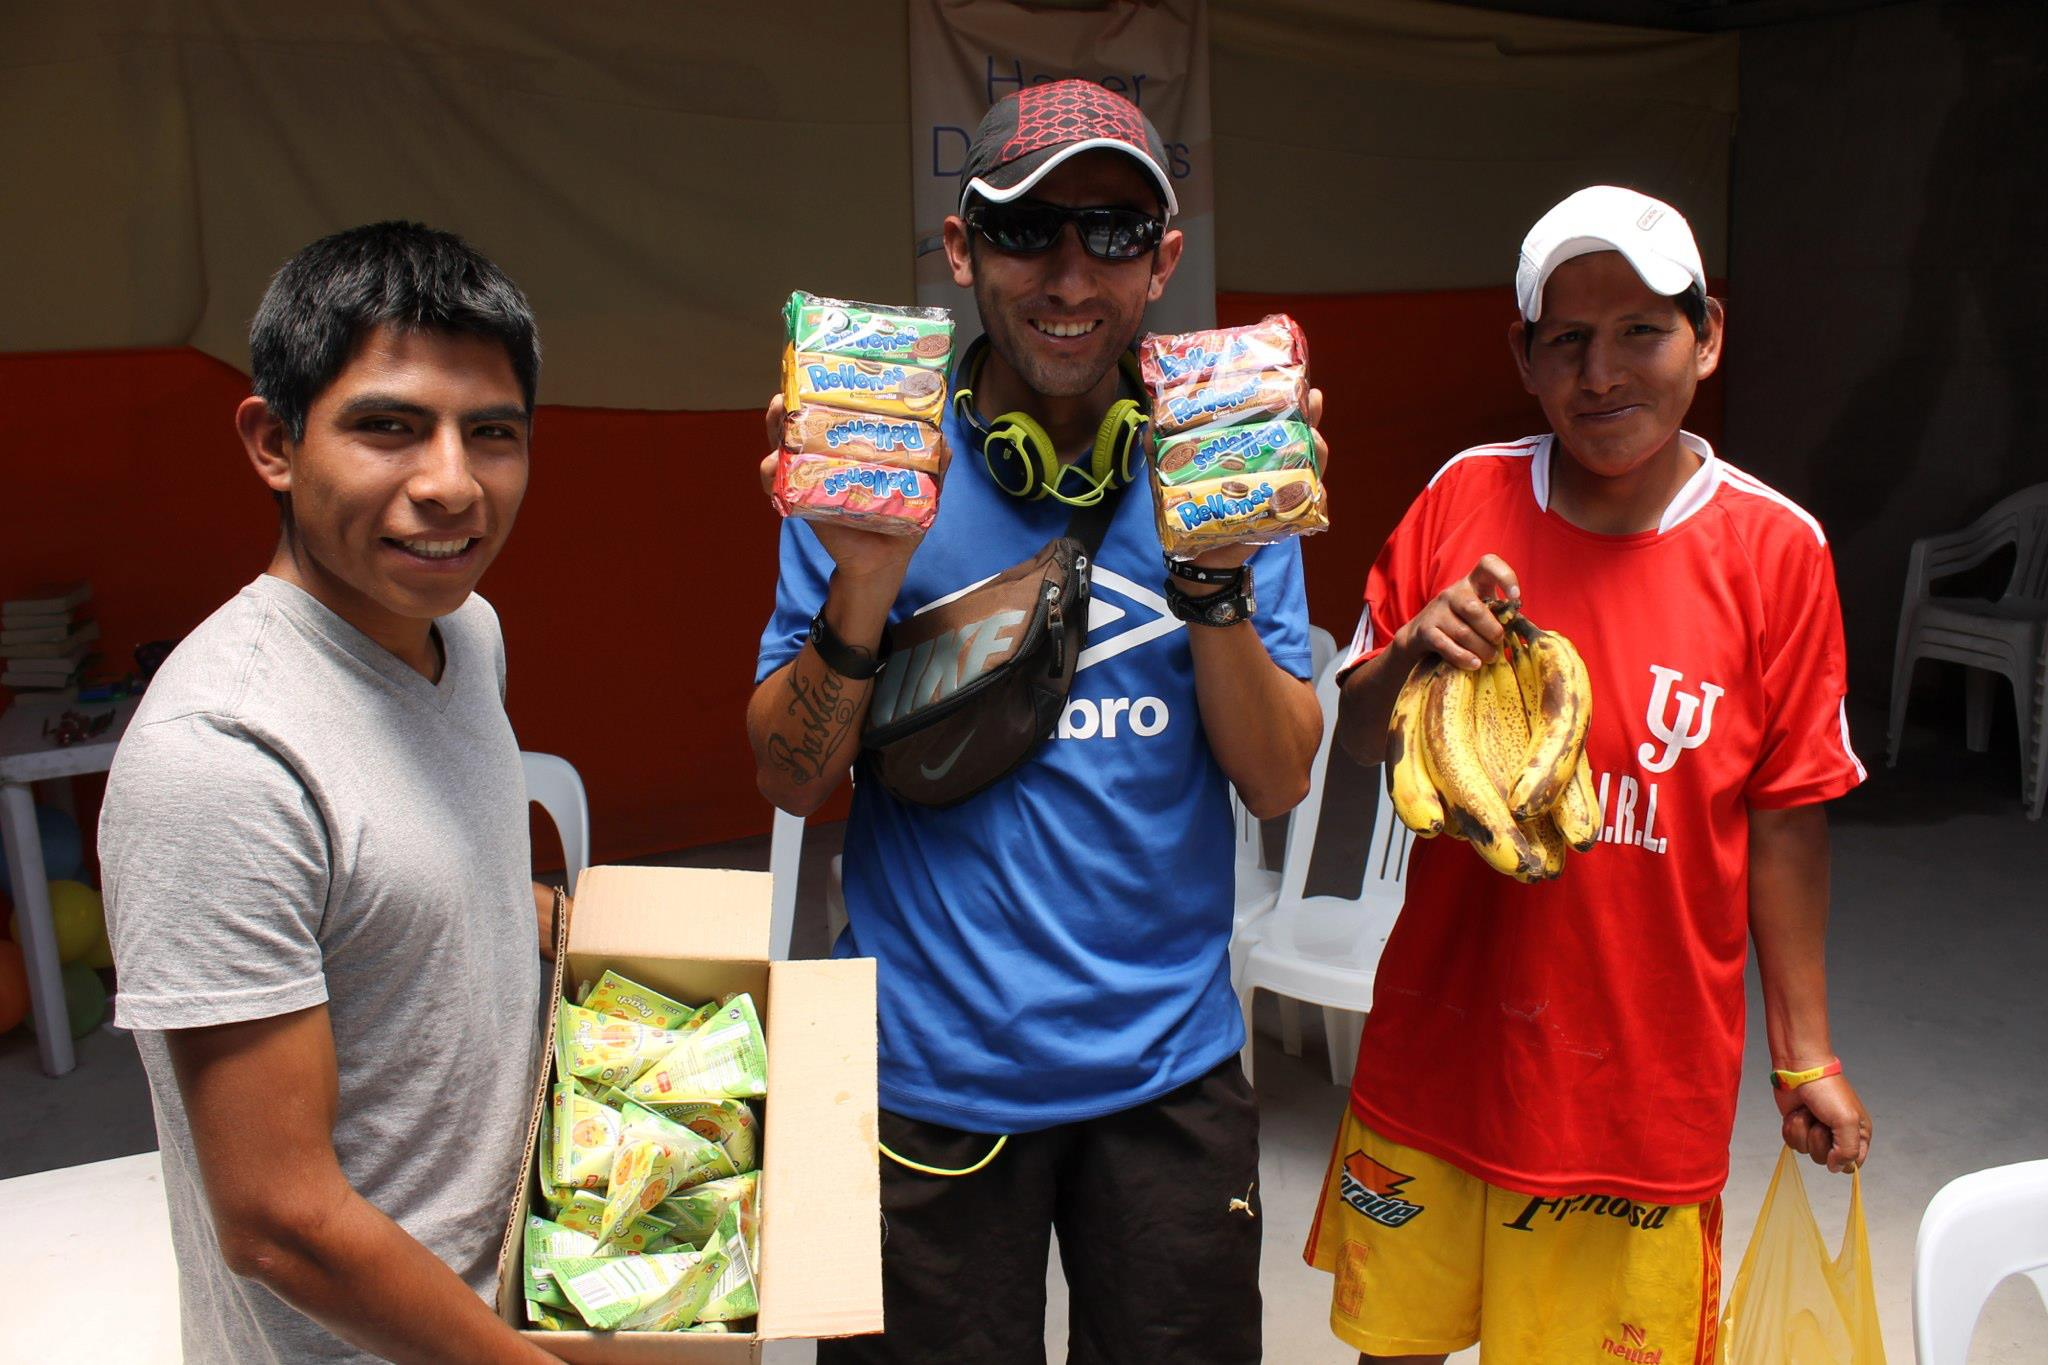 Providing food for kids at VBS